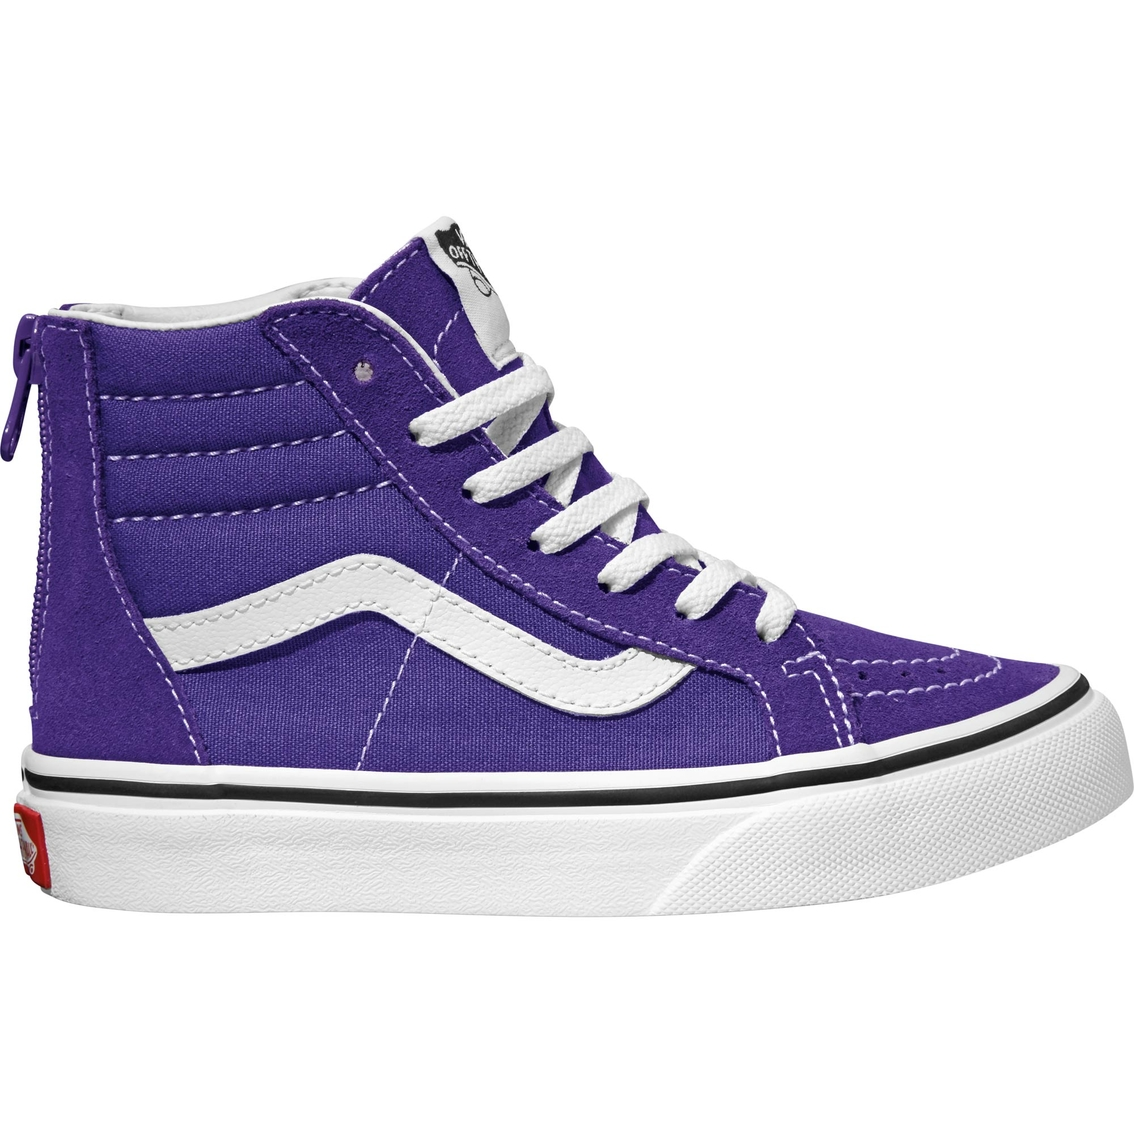 Vans Shoes High Tops For Girls